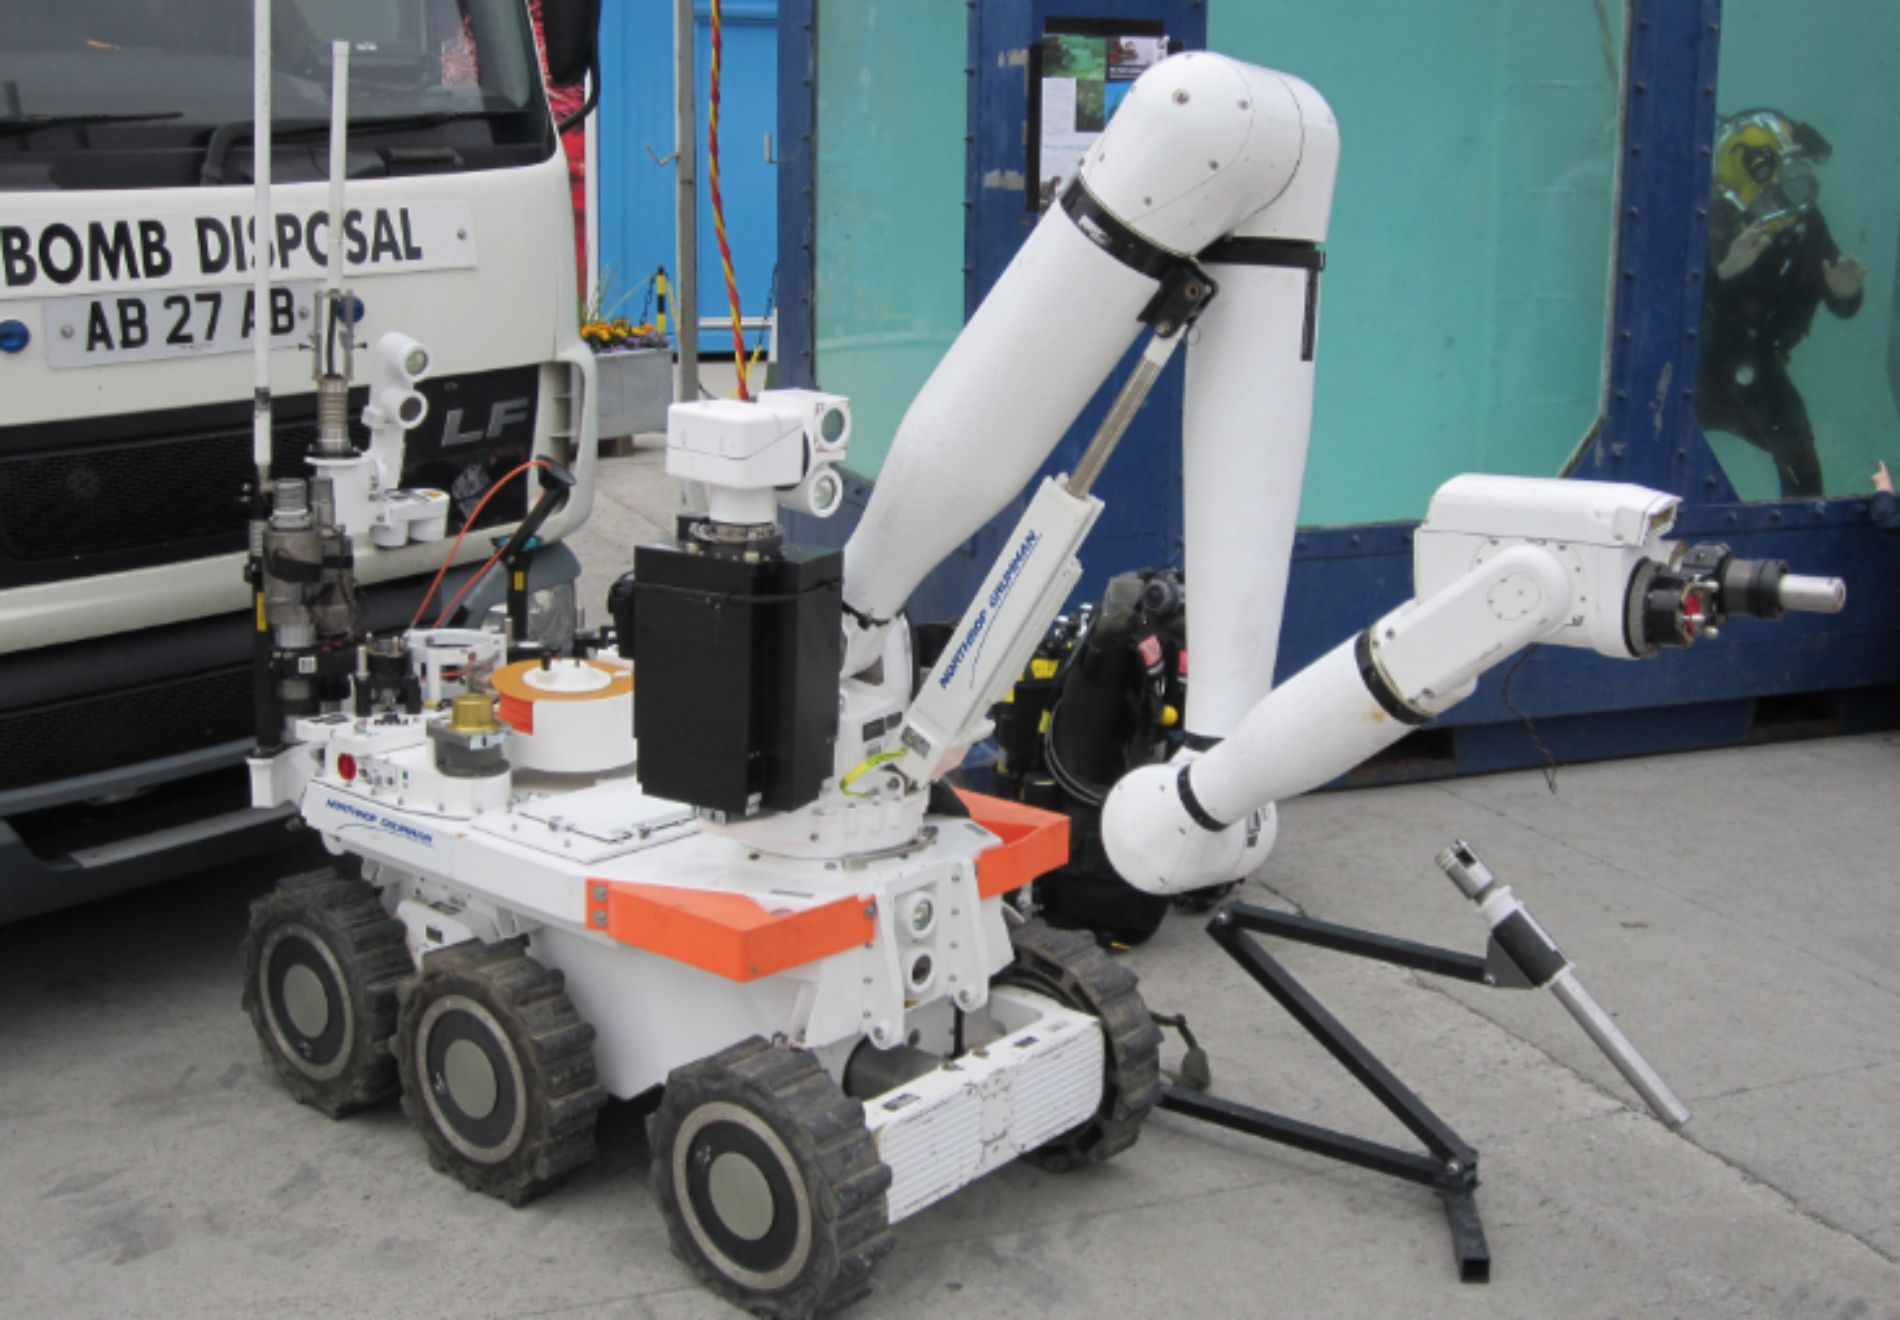 The Past and Future of Bomb Disposal Robots